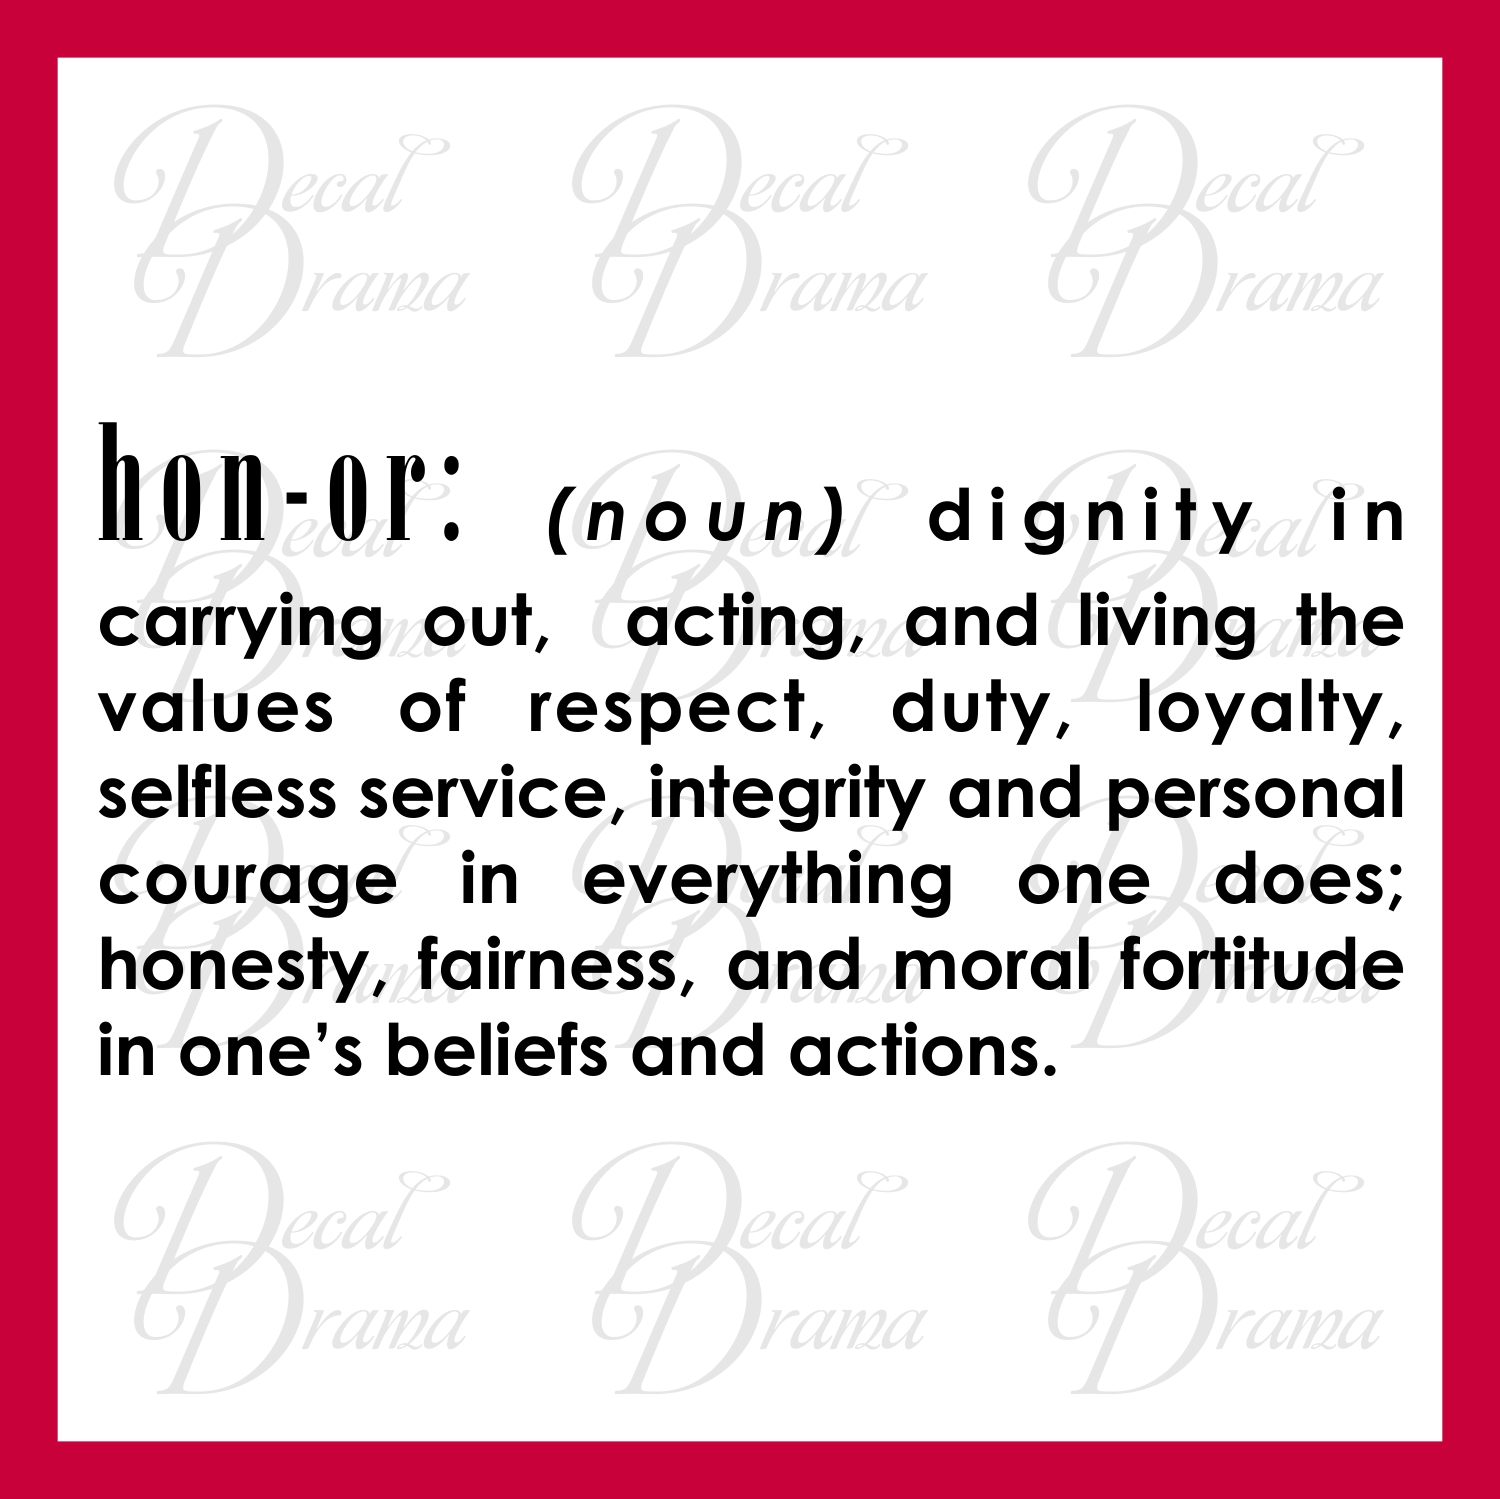 Decal Drama · HONOR dignity, respect, duty, loyalty ...